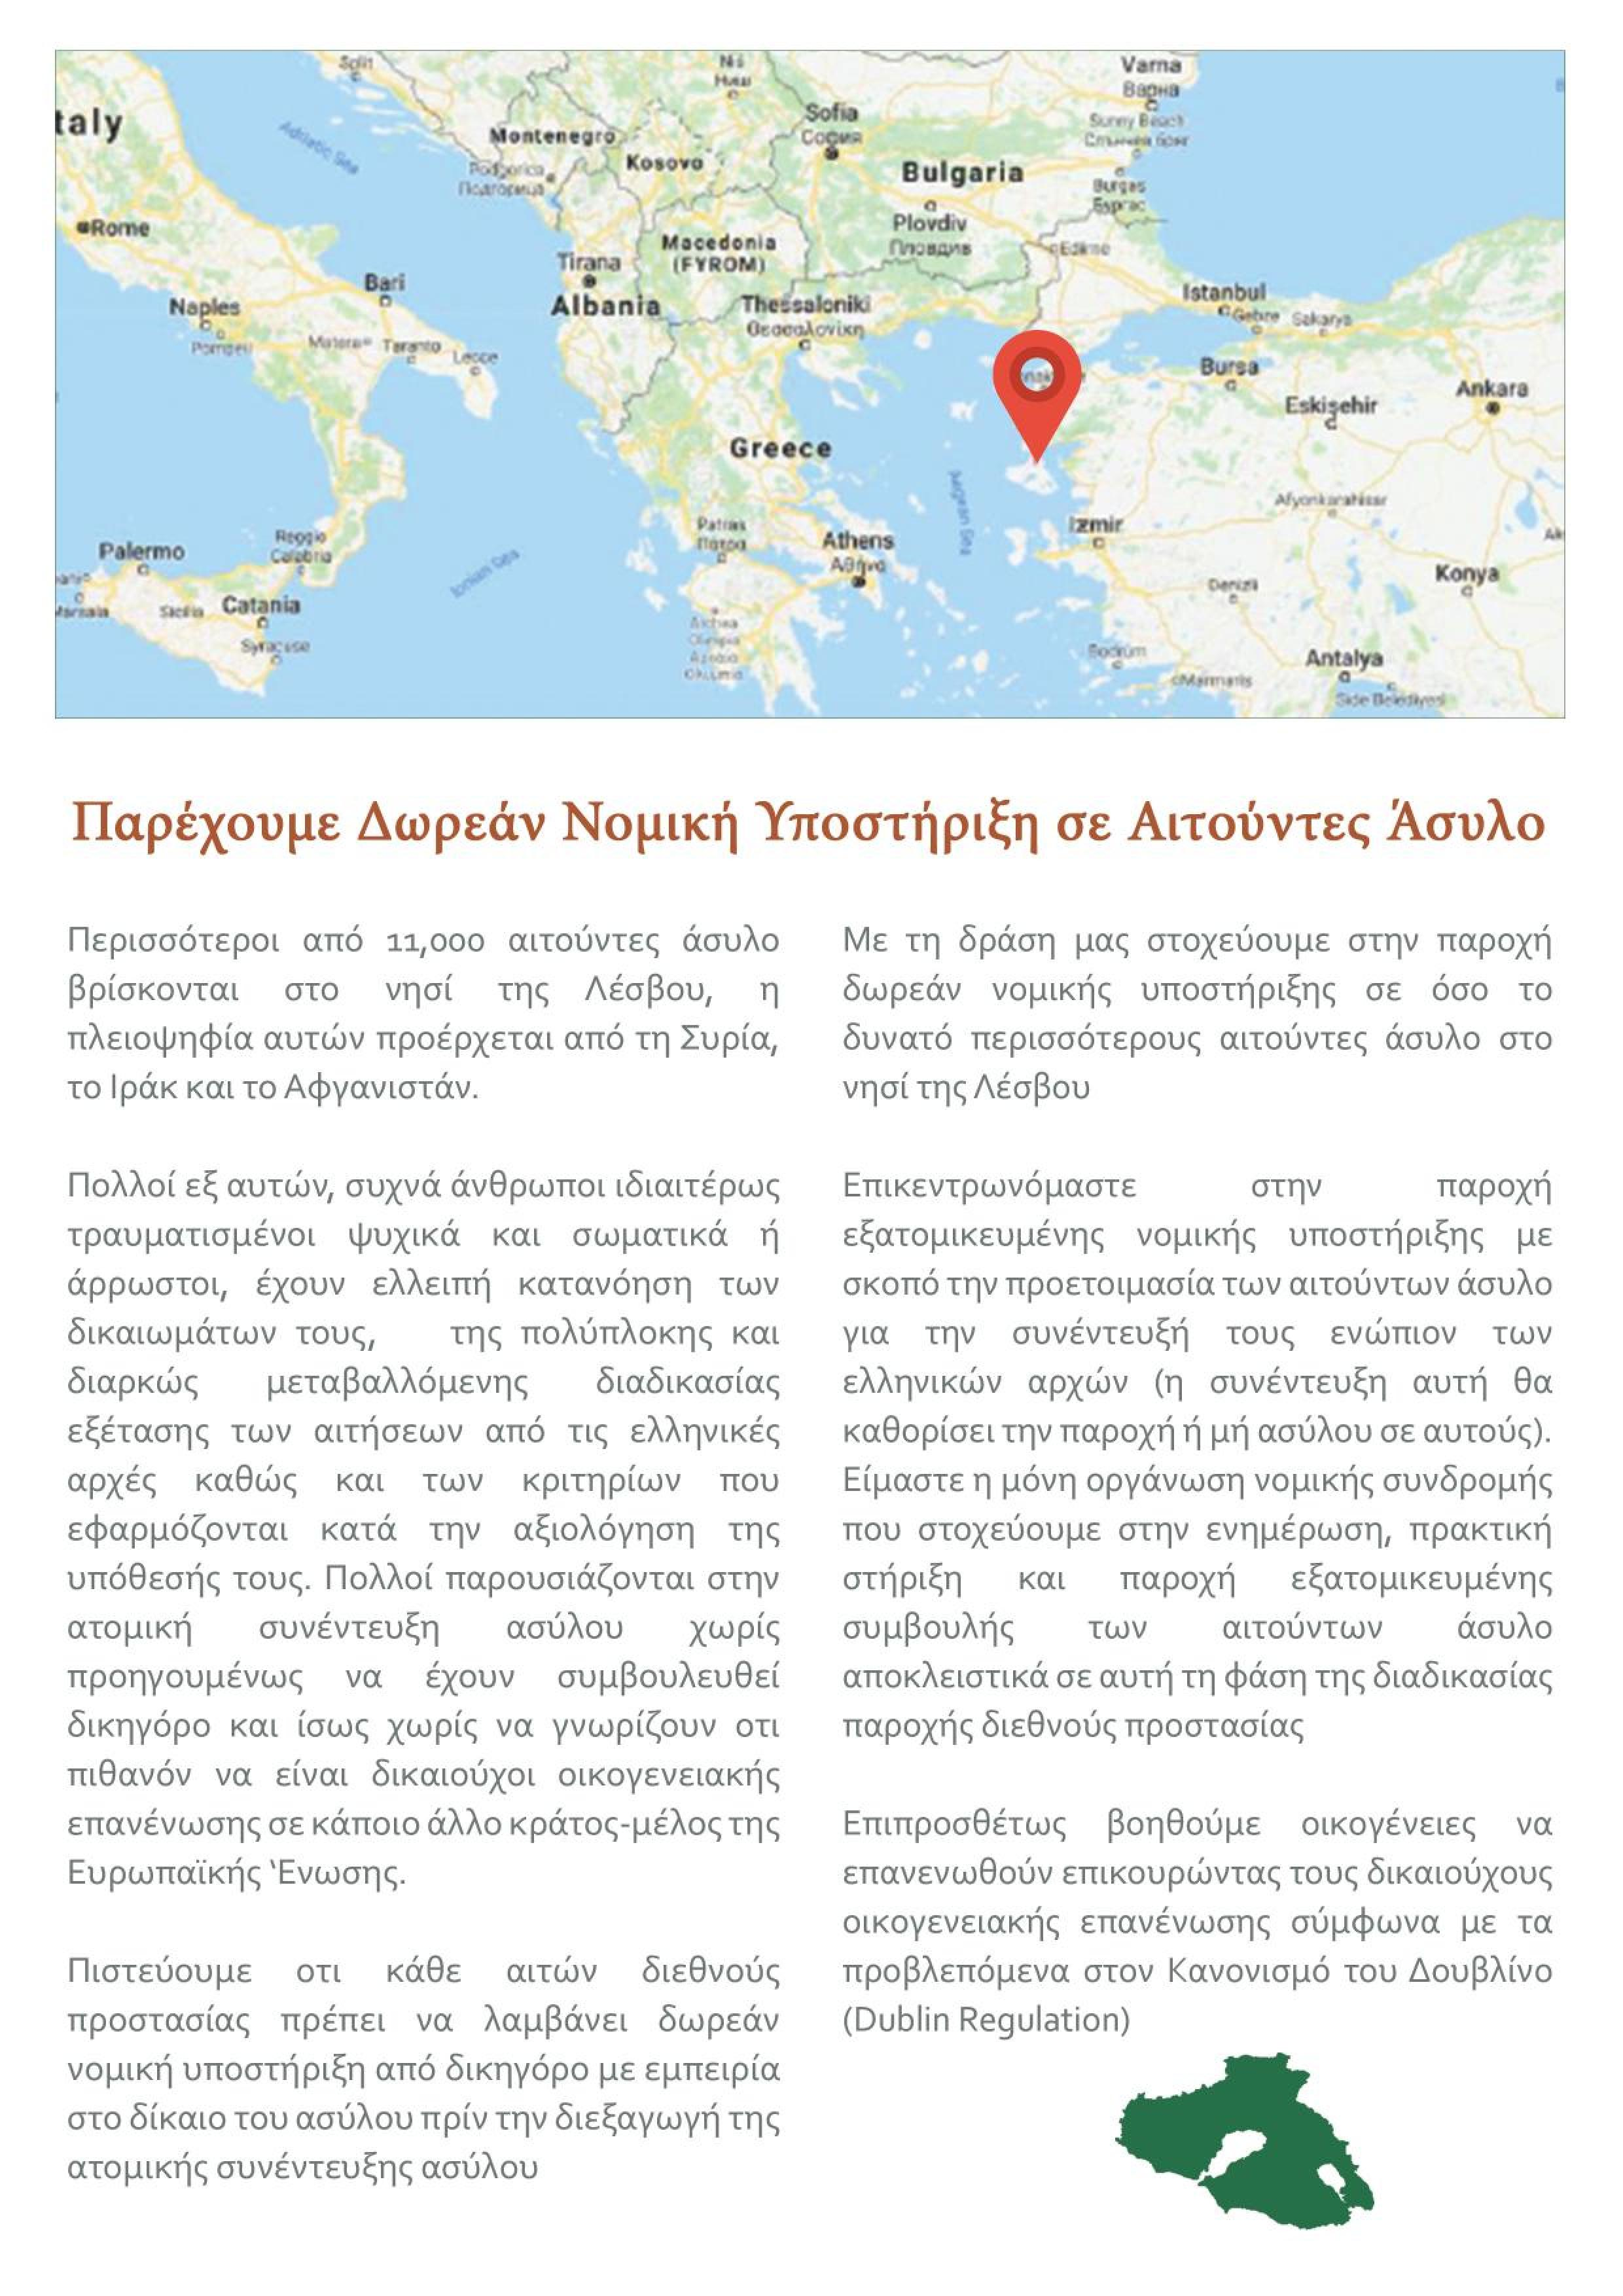 European Lawyers in Lesvos - Infographic_GR-page-002.jpg